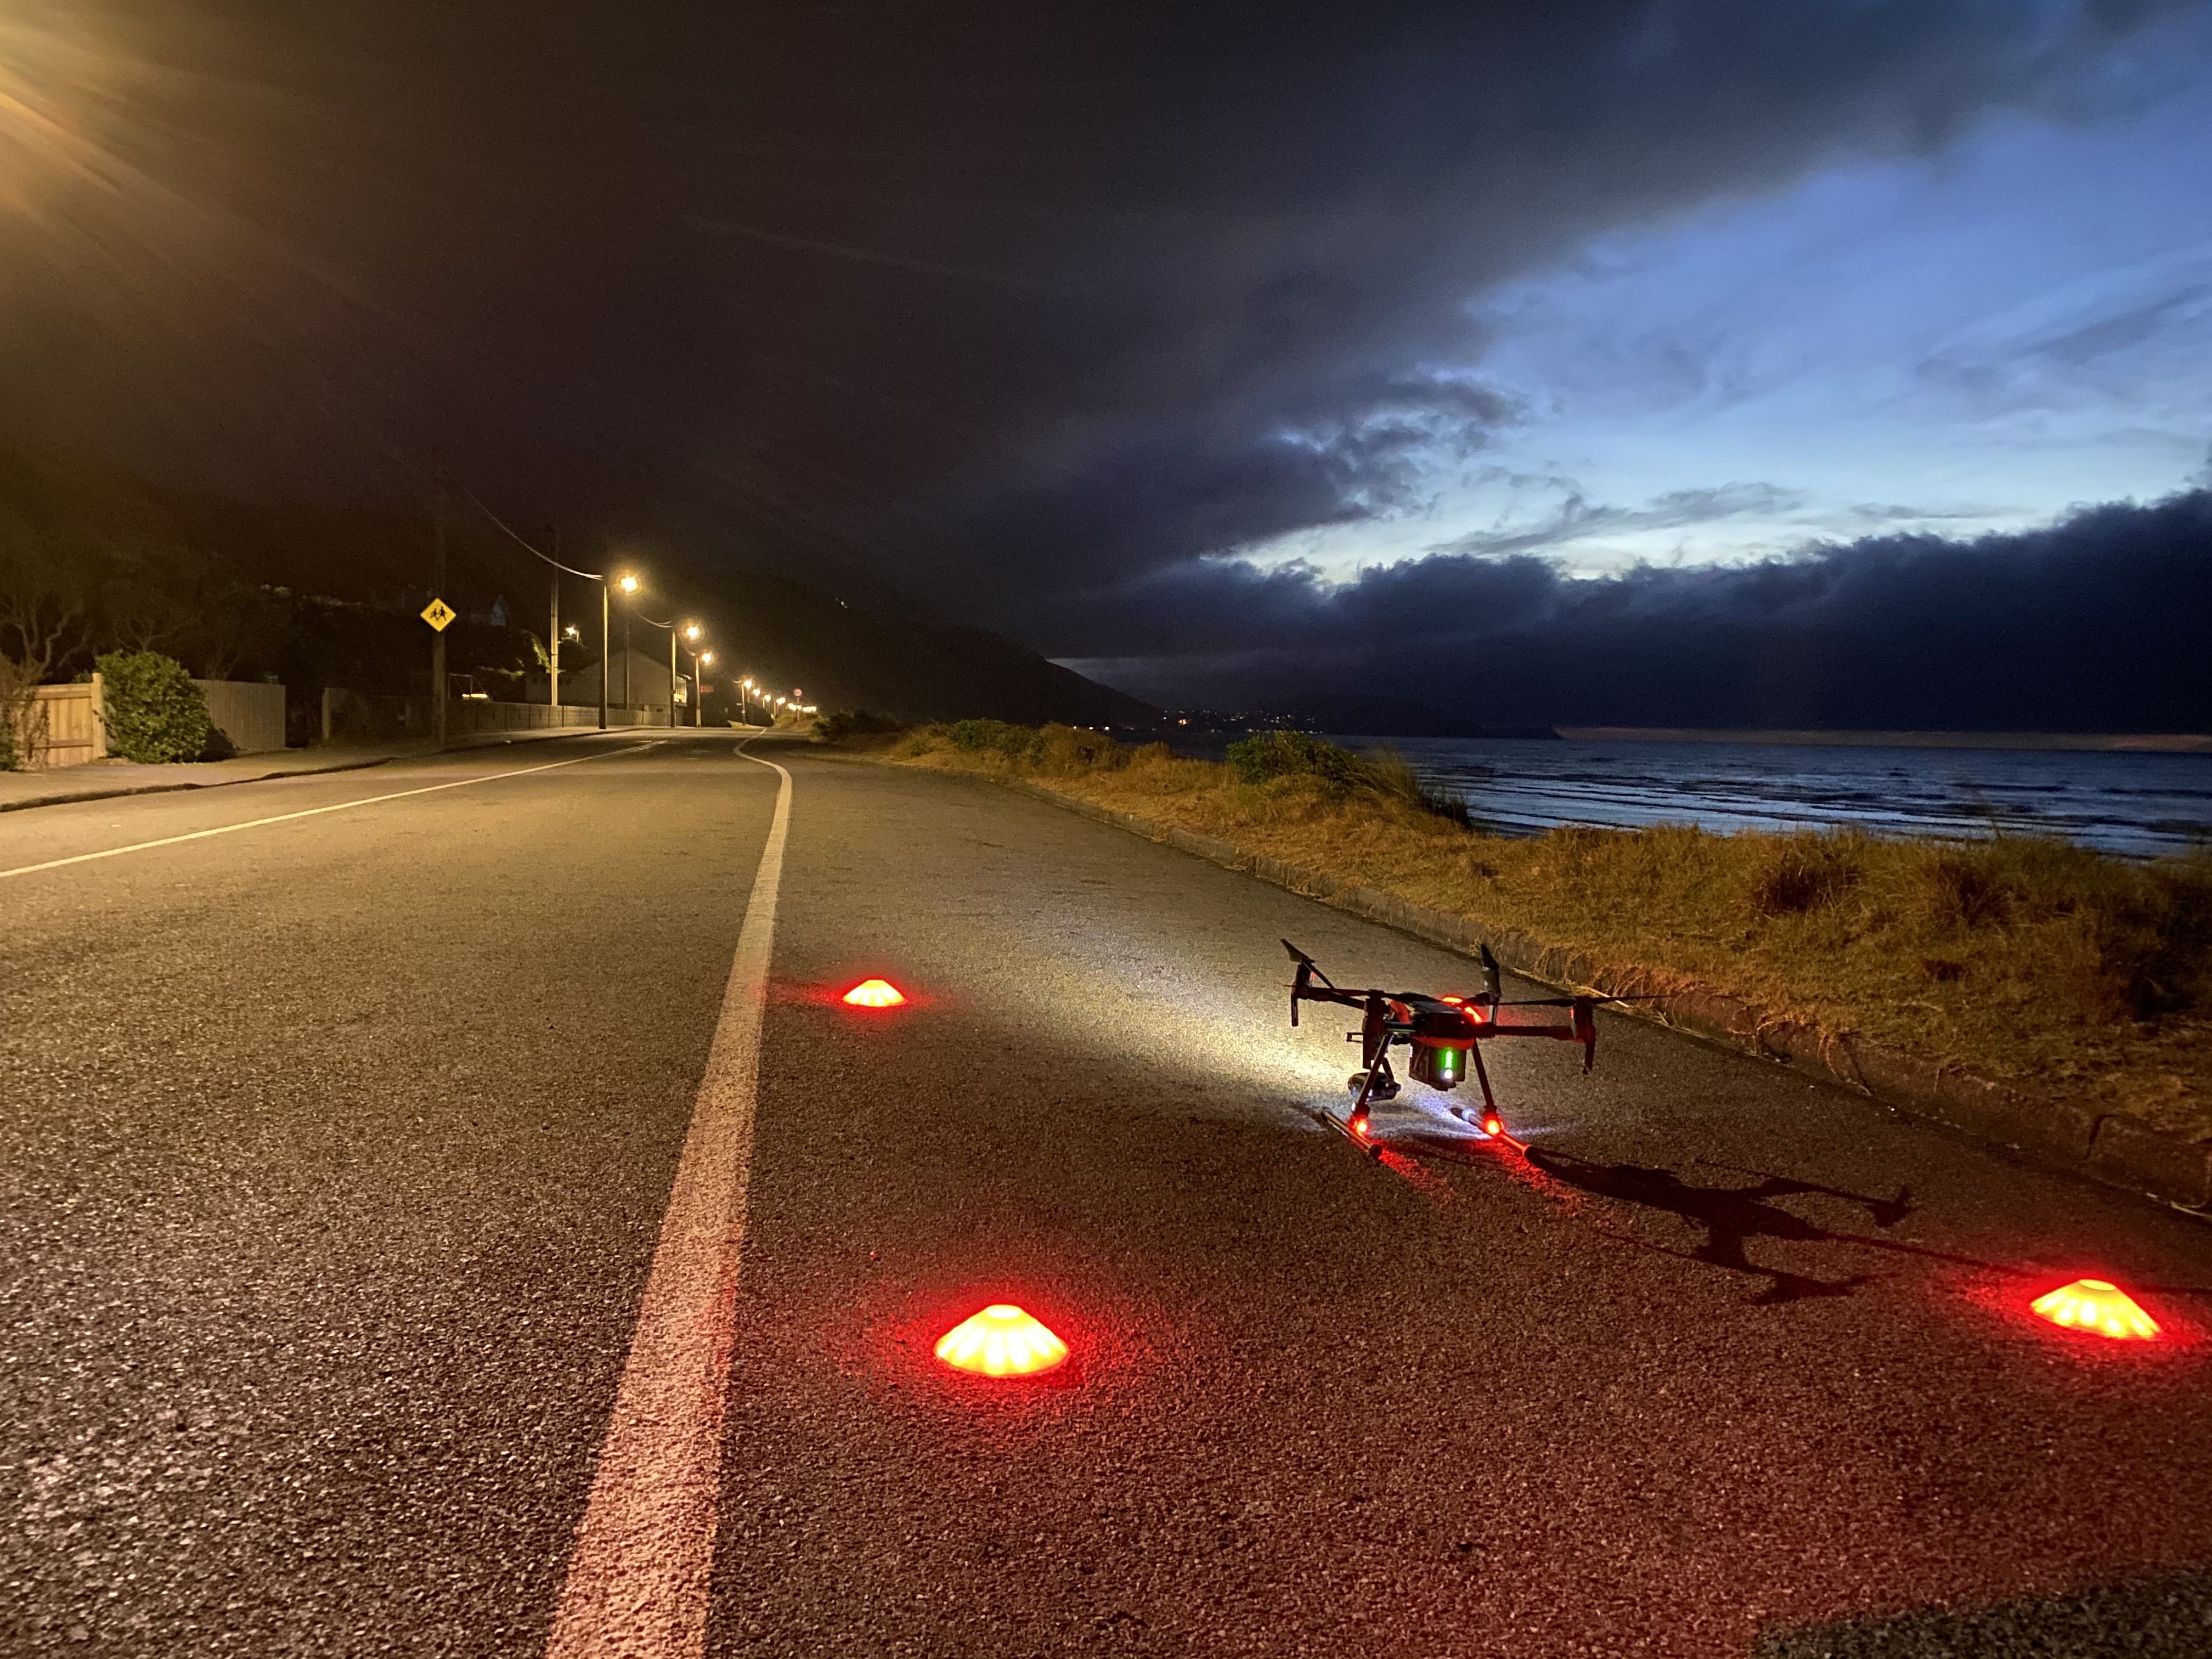 Drone trial to help detect hidden leaks